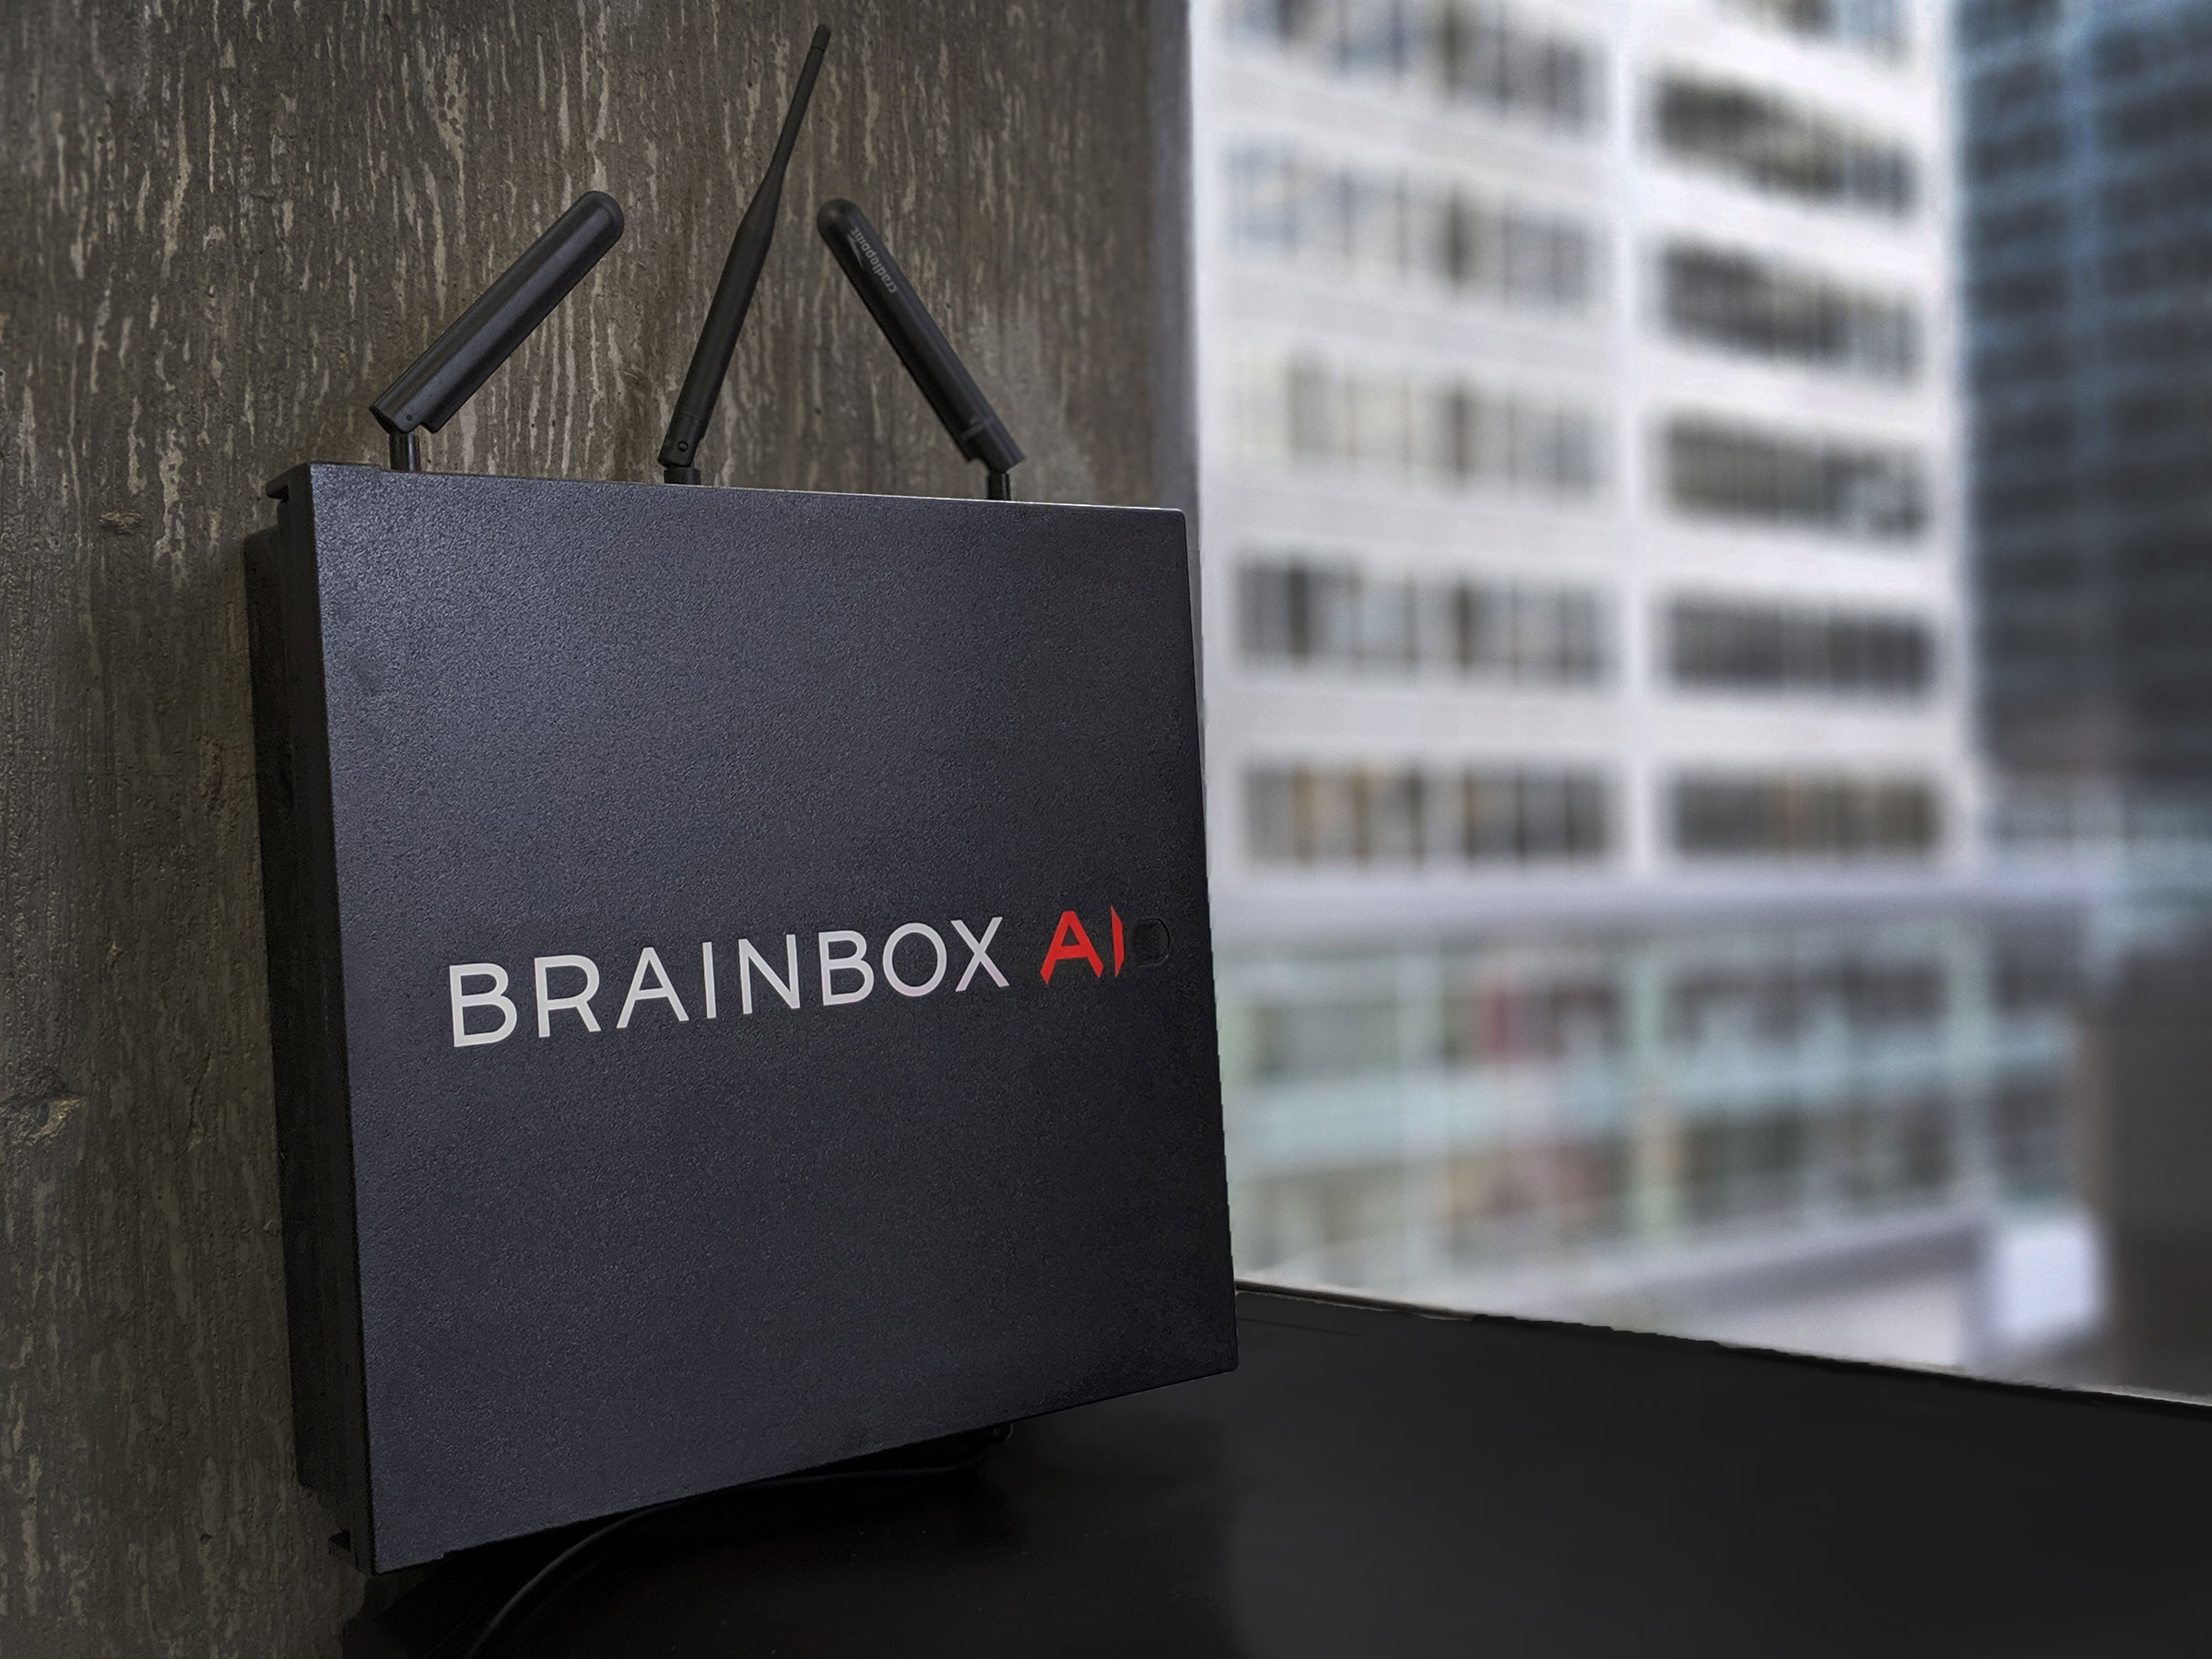 BrainBox AI: The 100 Best Inventions of 2020 | TIME